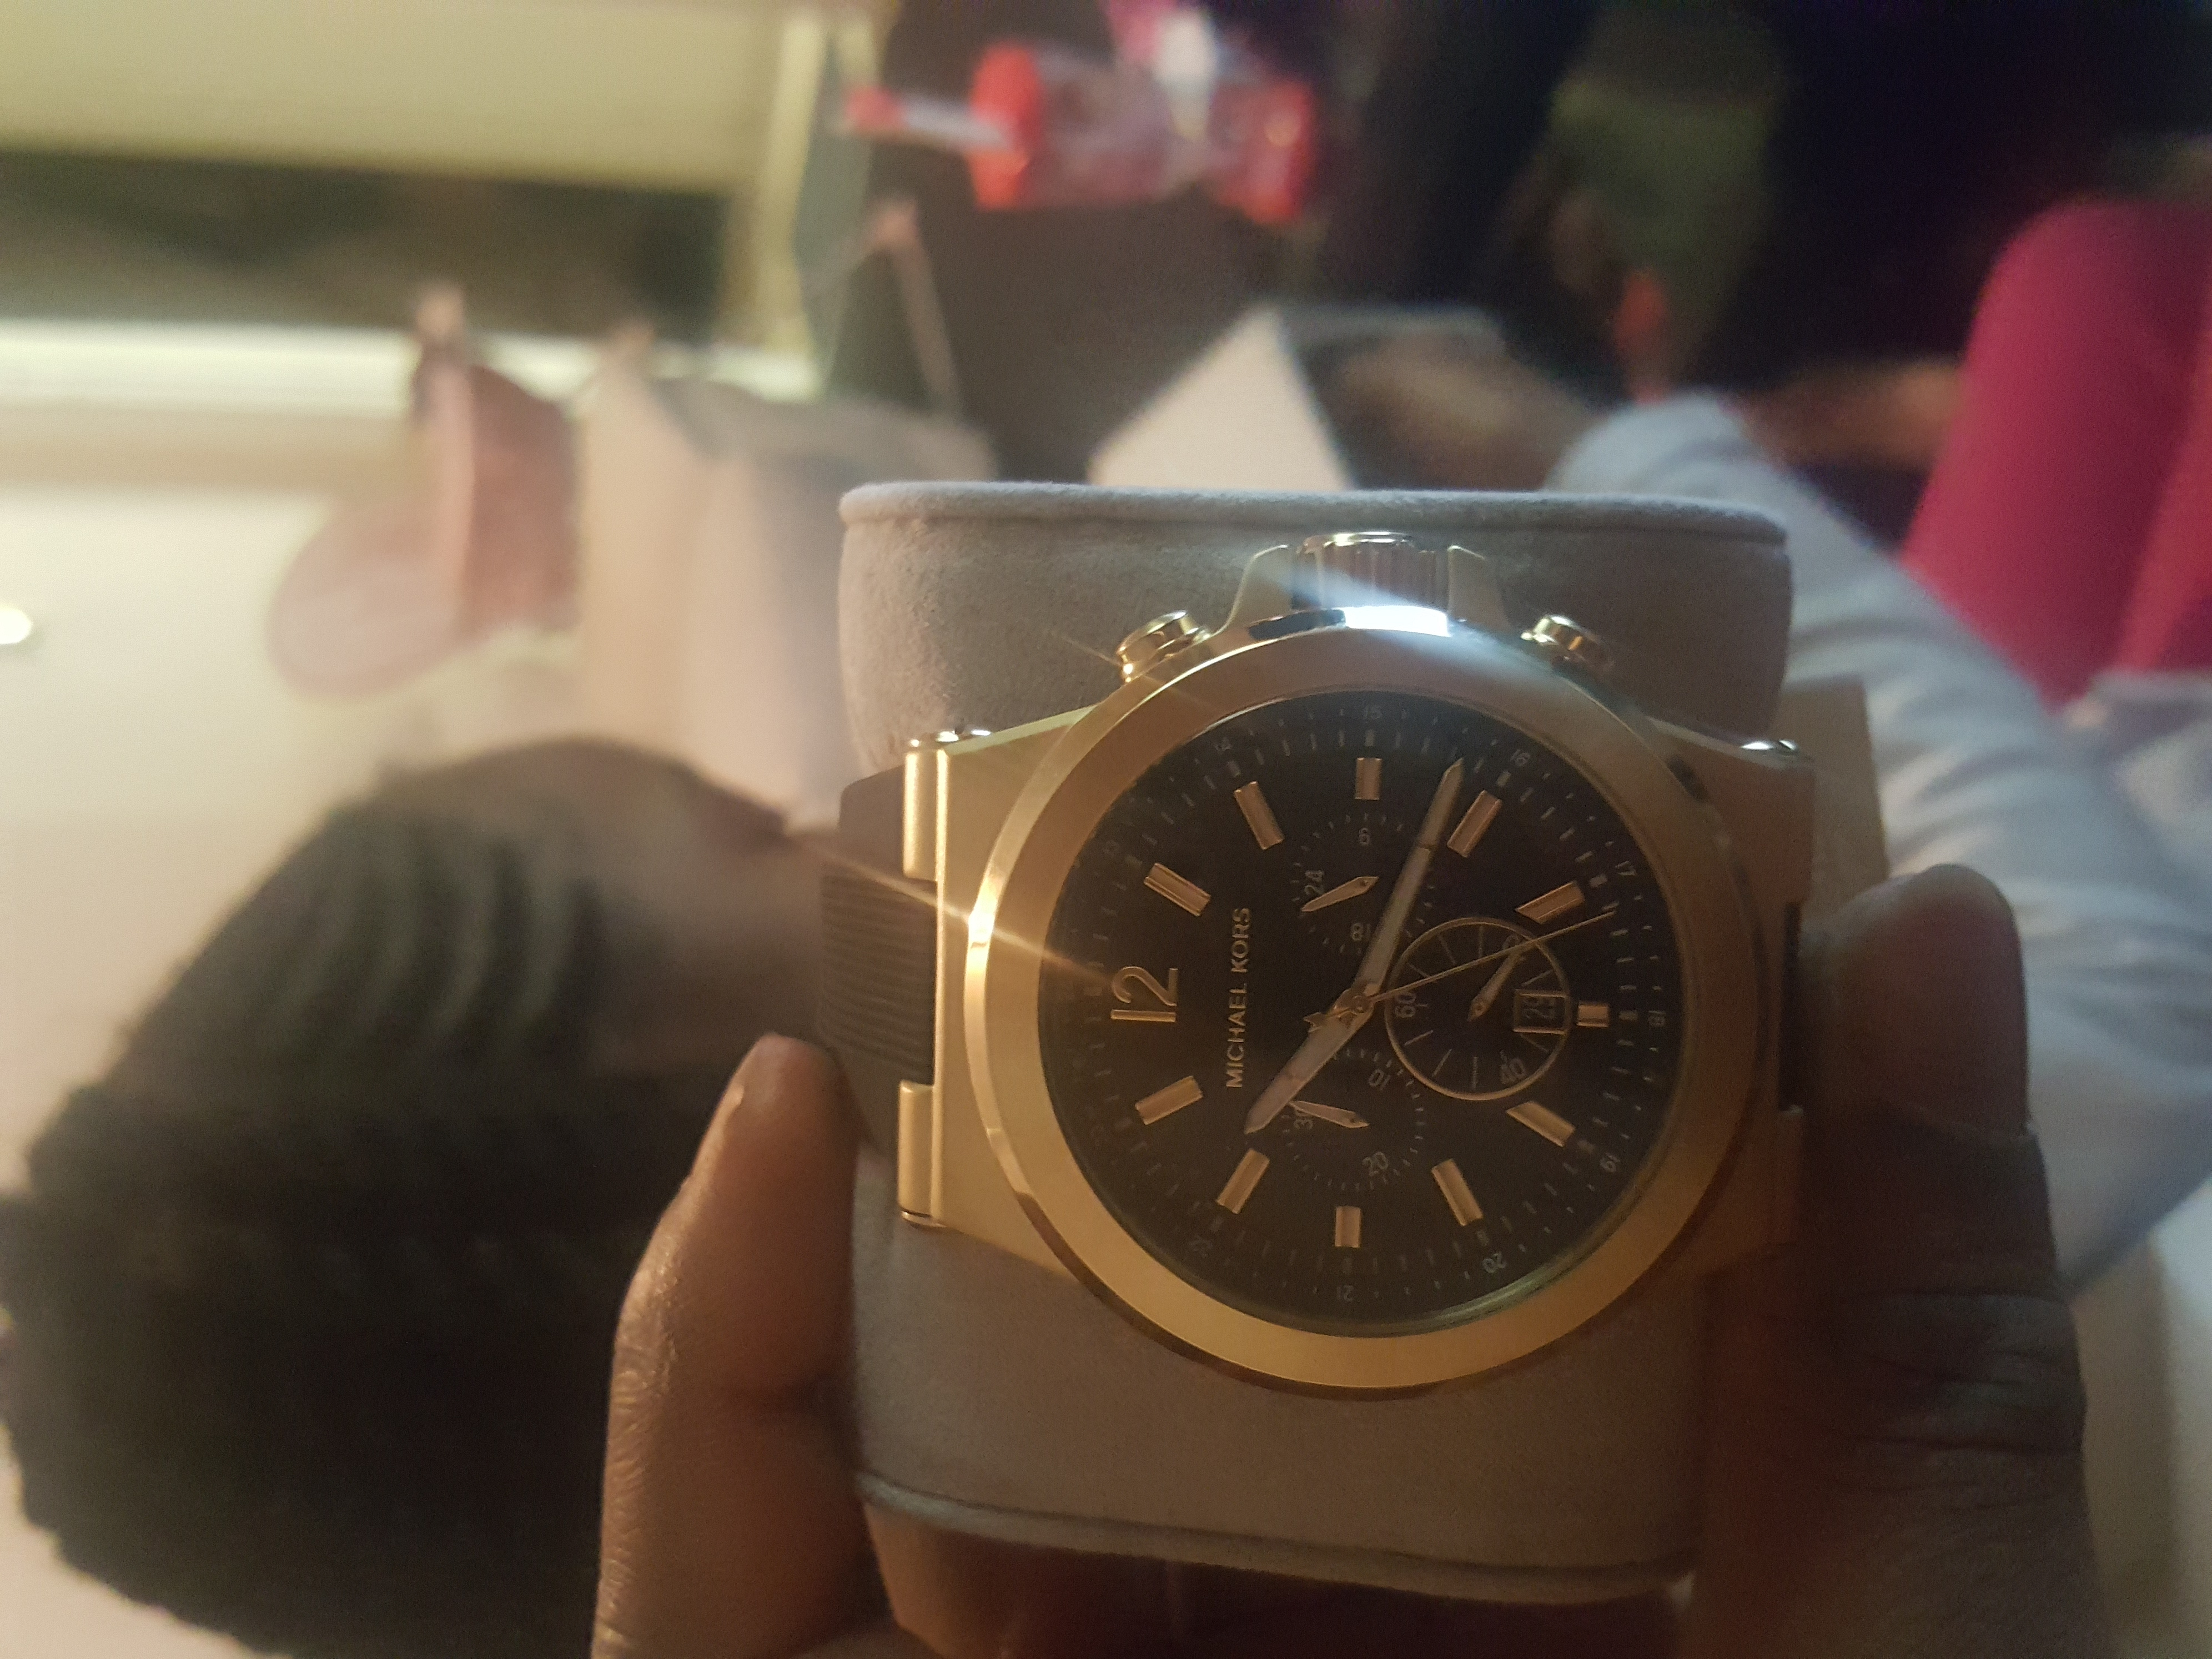 363eb70f6926 I loved the watch..could not sleep after I purchased it